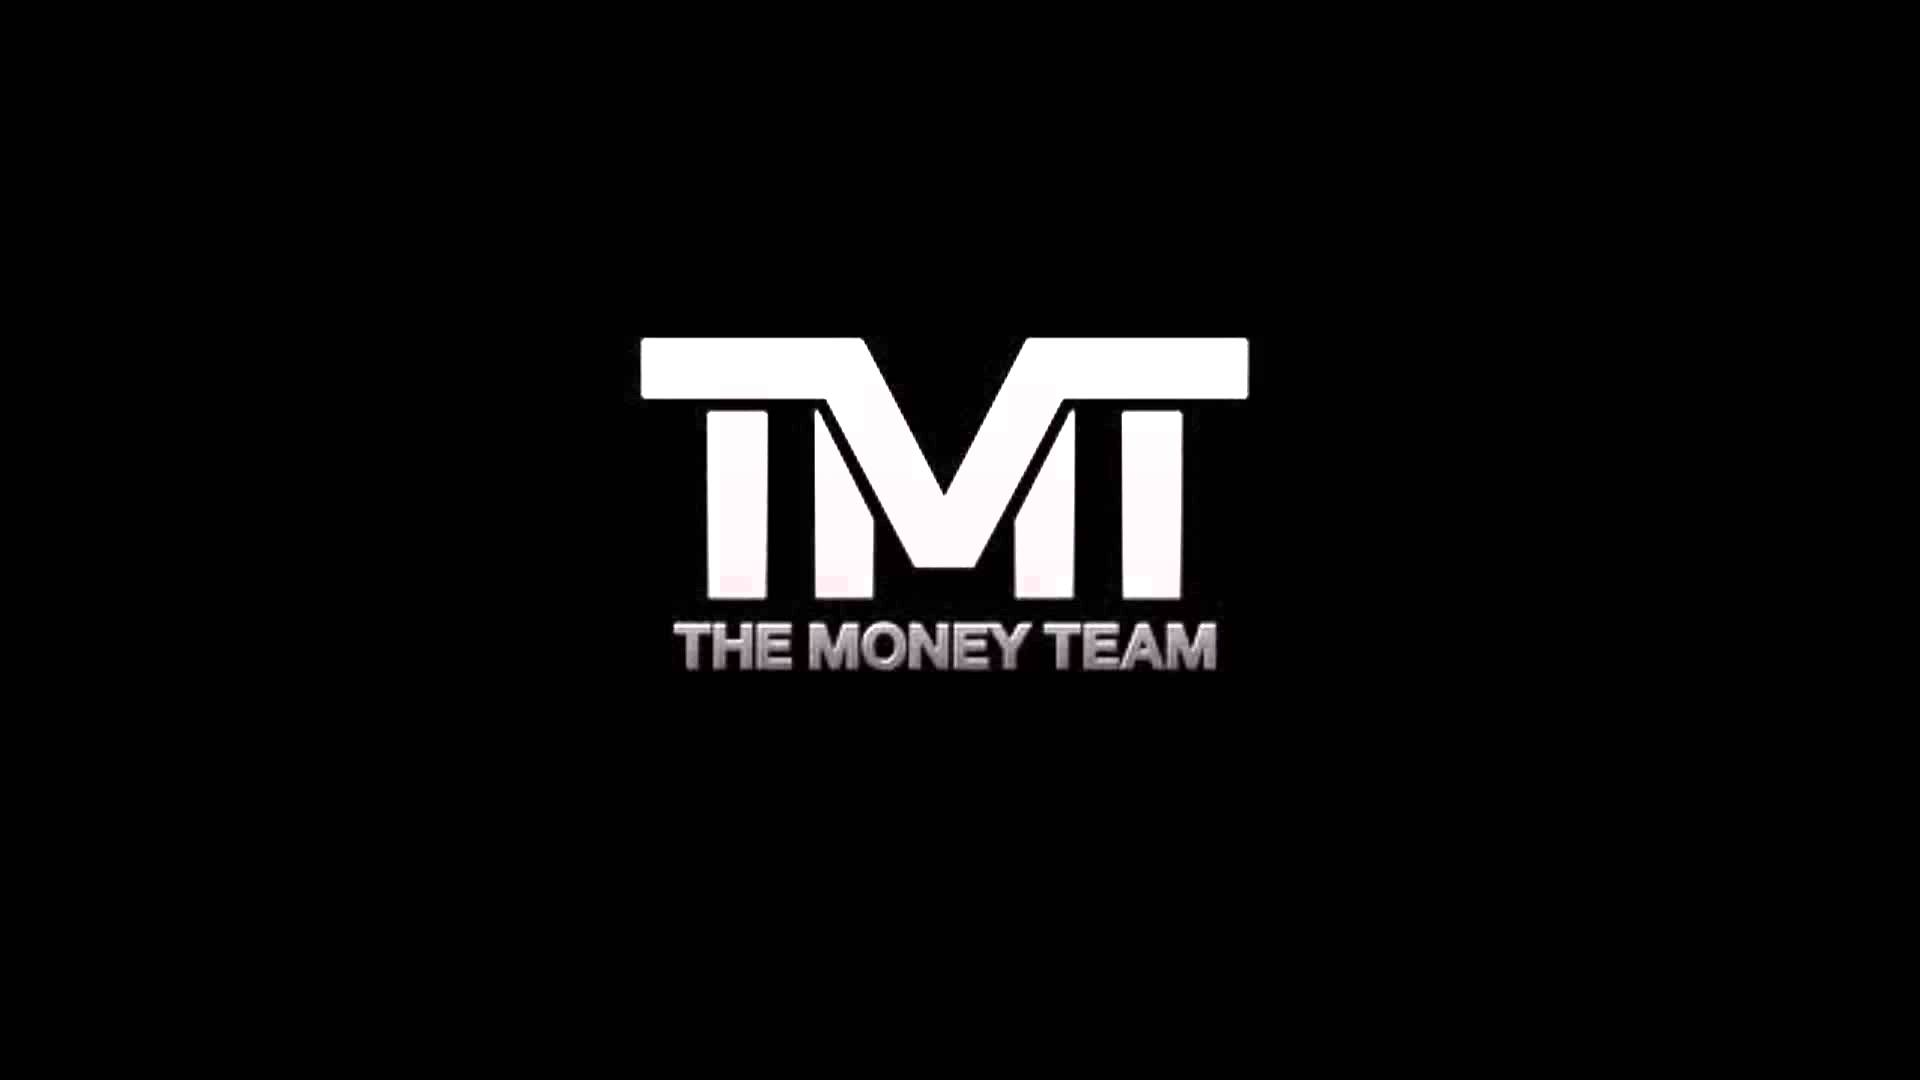 Displaying 16 Images For The Money Team Wallpaper Hd 1920x1080